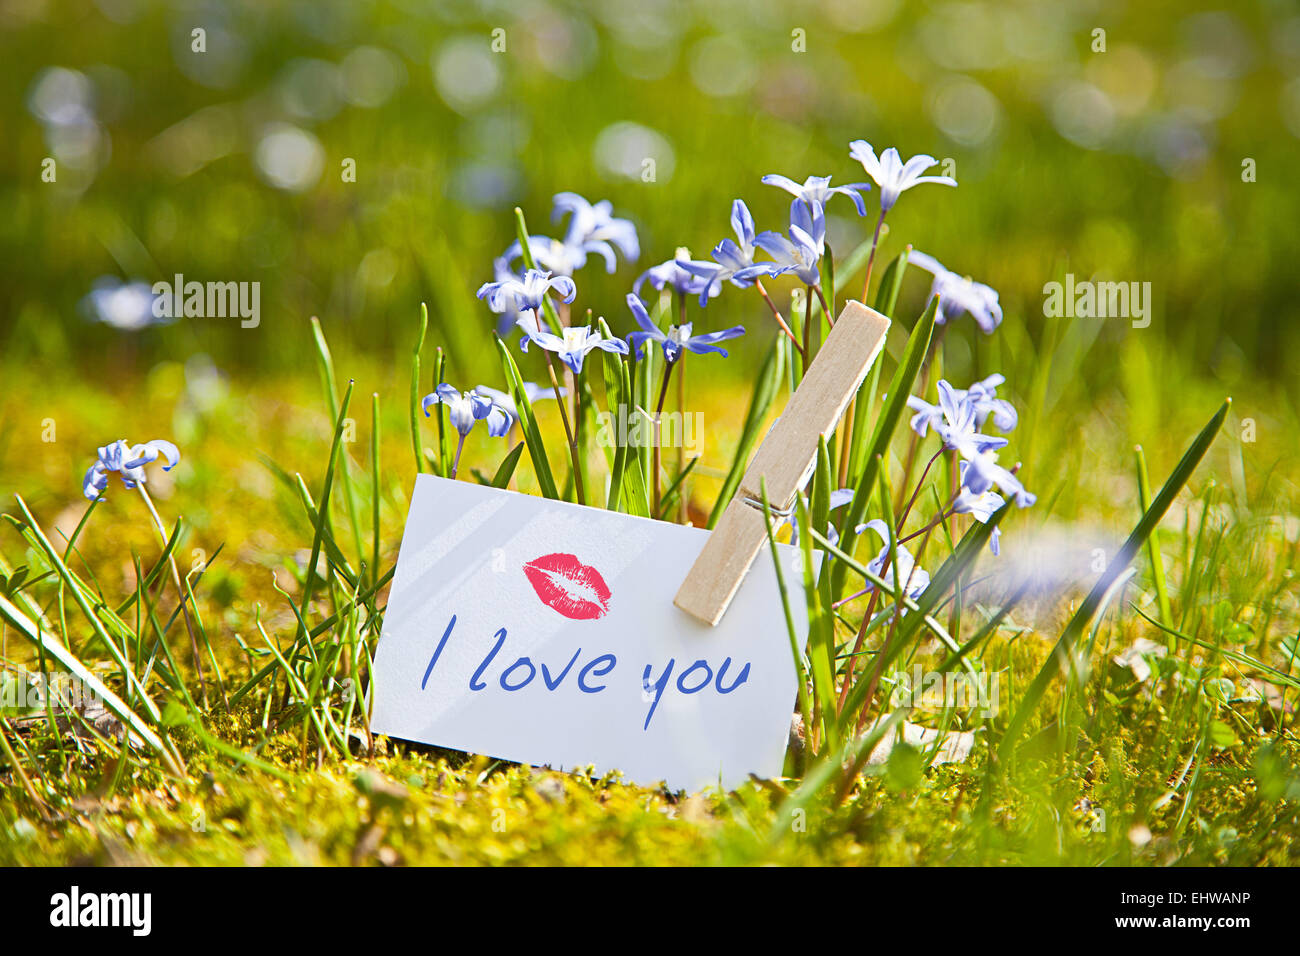 Feng Shui Spring Flowers Stock Photos Feng Shui Spring Flowers